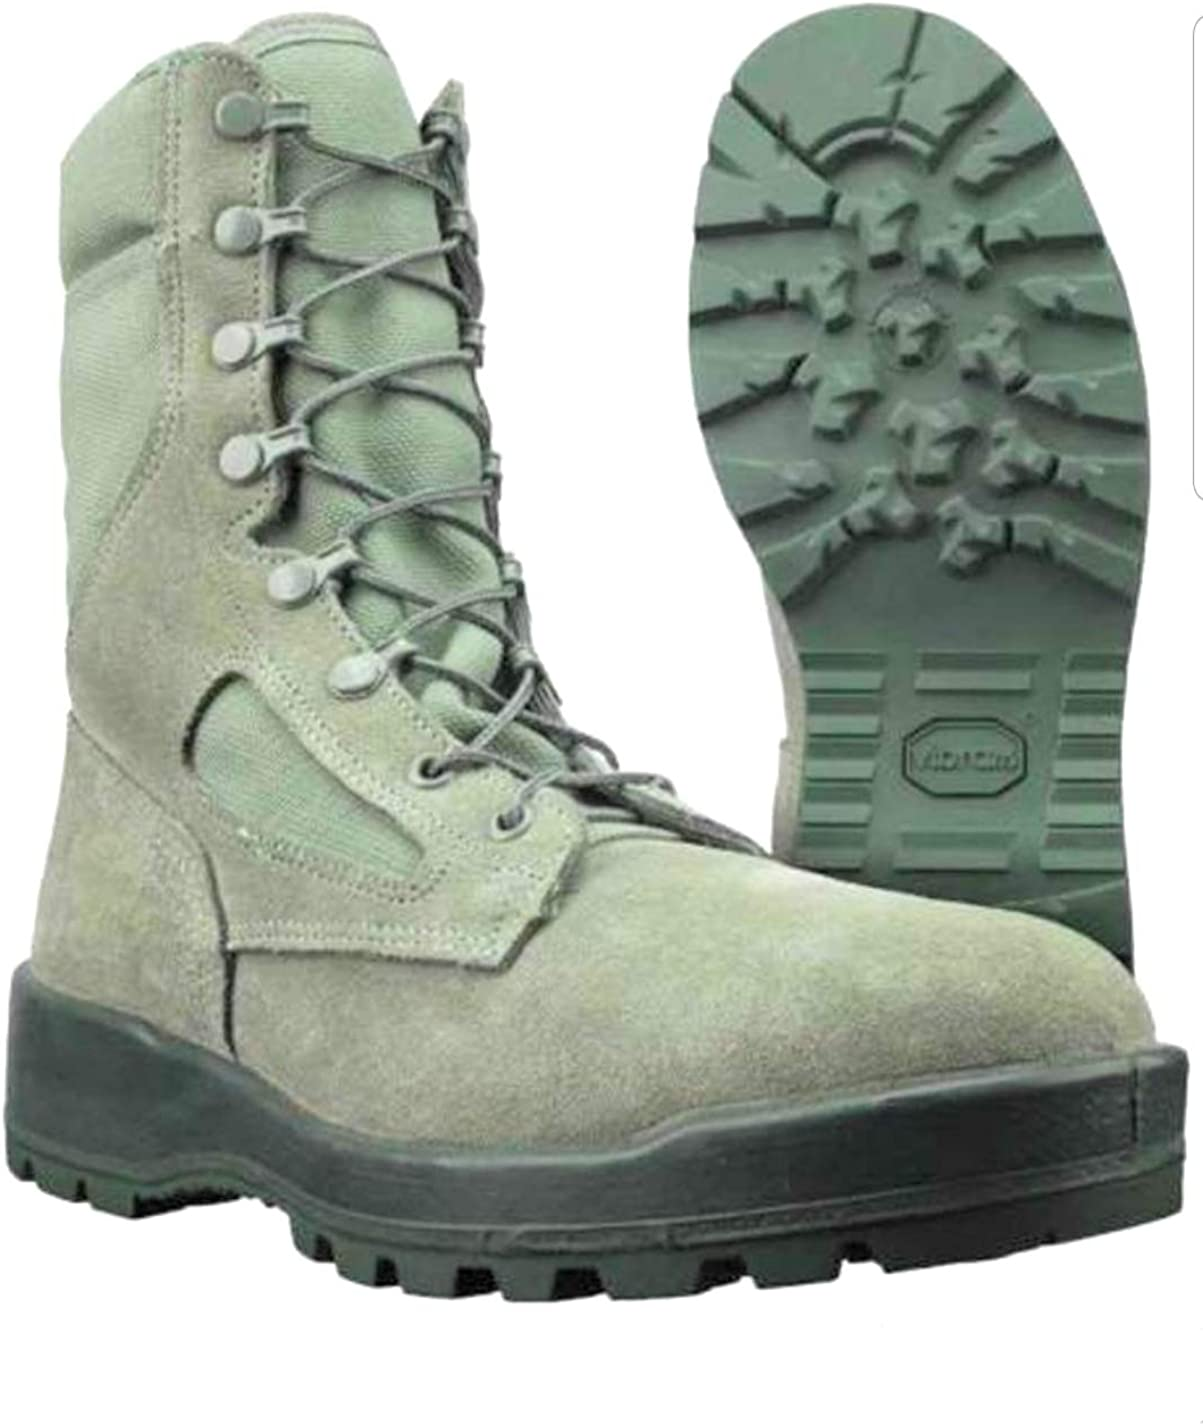 MCRAE AIR Force Temperate Weather Military SAGE Green Women's Boots